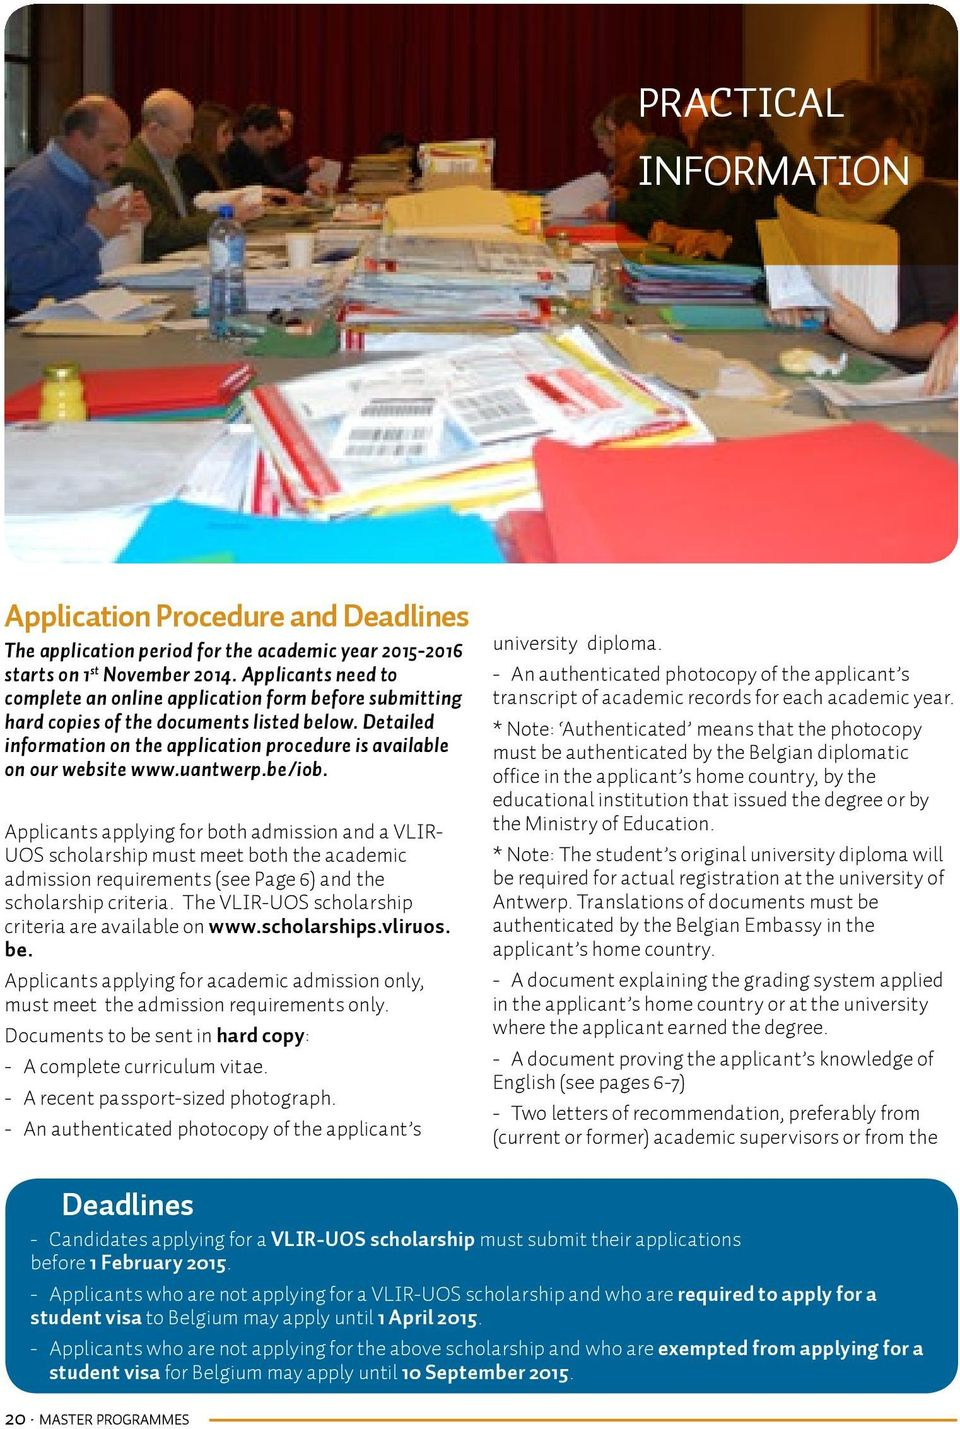 uantwerp.be/iob. Applicants applying for both admission and a VLIR- UOS scholarship must meet both the academic admission requirements (see Page 6) and the scholarship criteria.